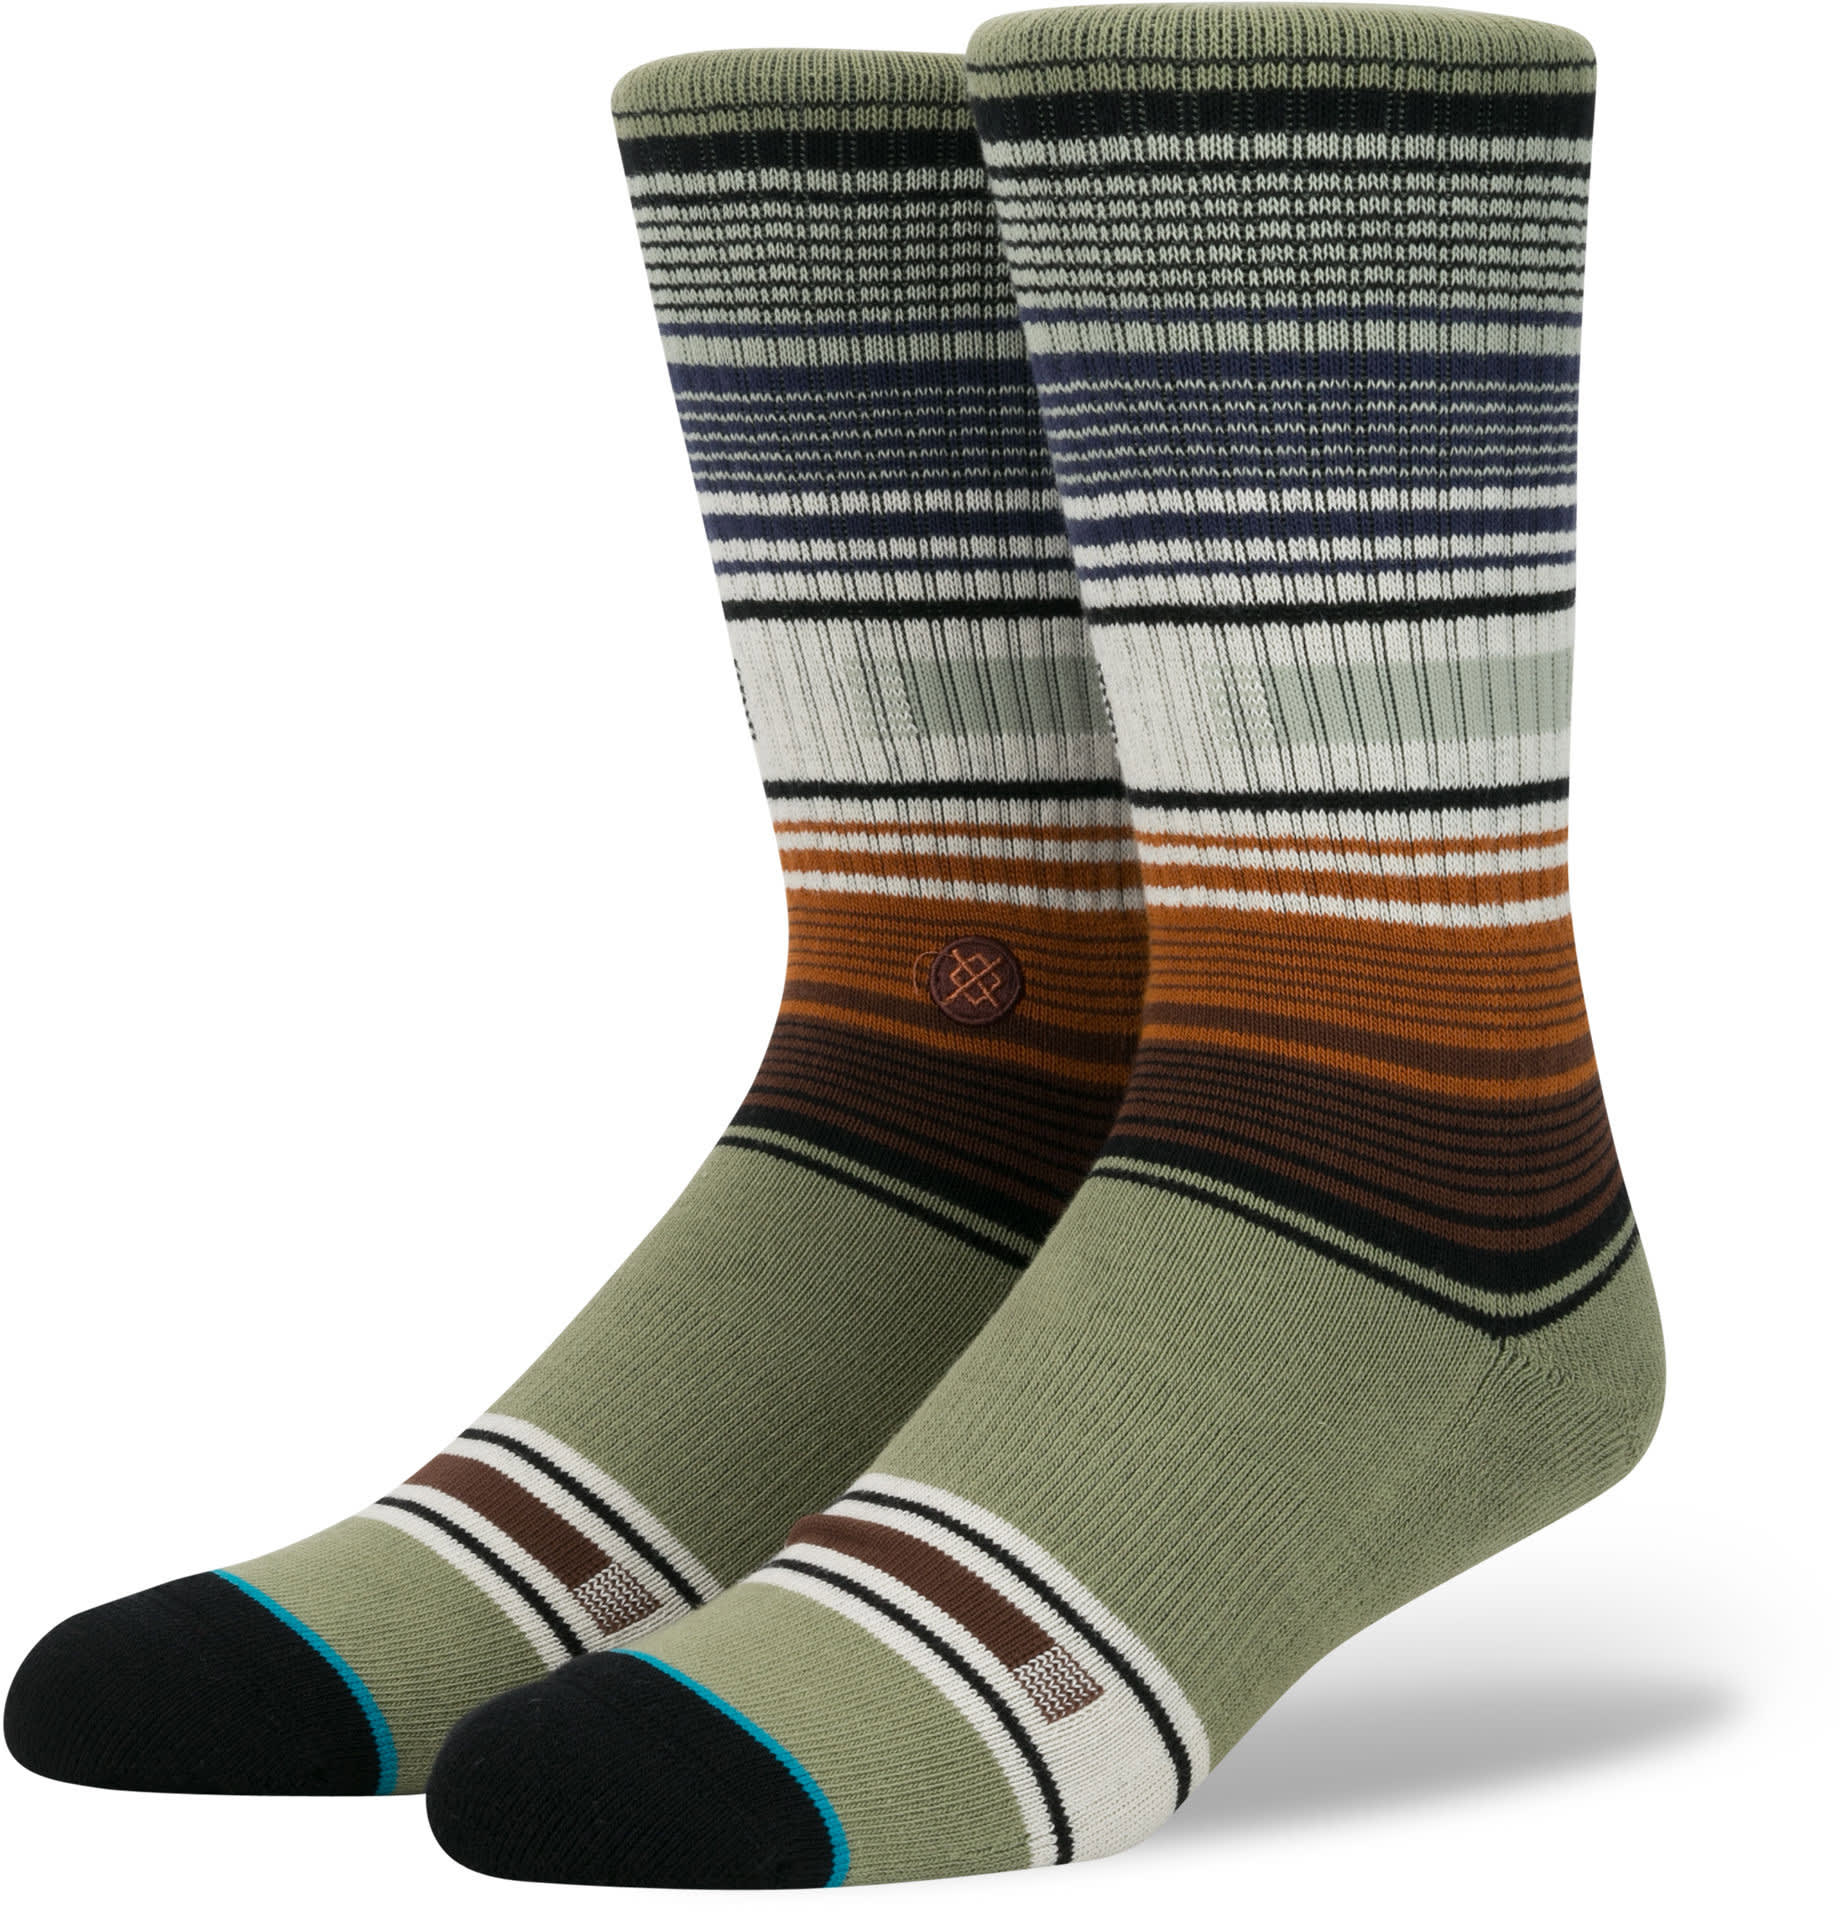 Wakeboards For Sale >> On Sale Stance Hatchets Socks up to 40% off